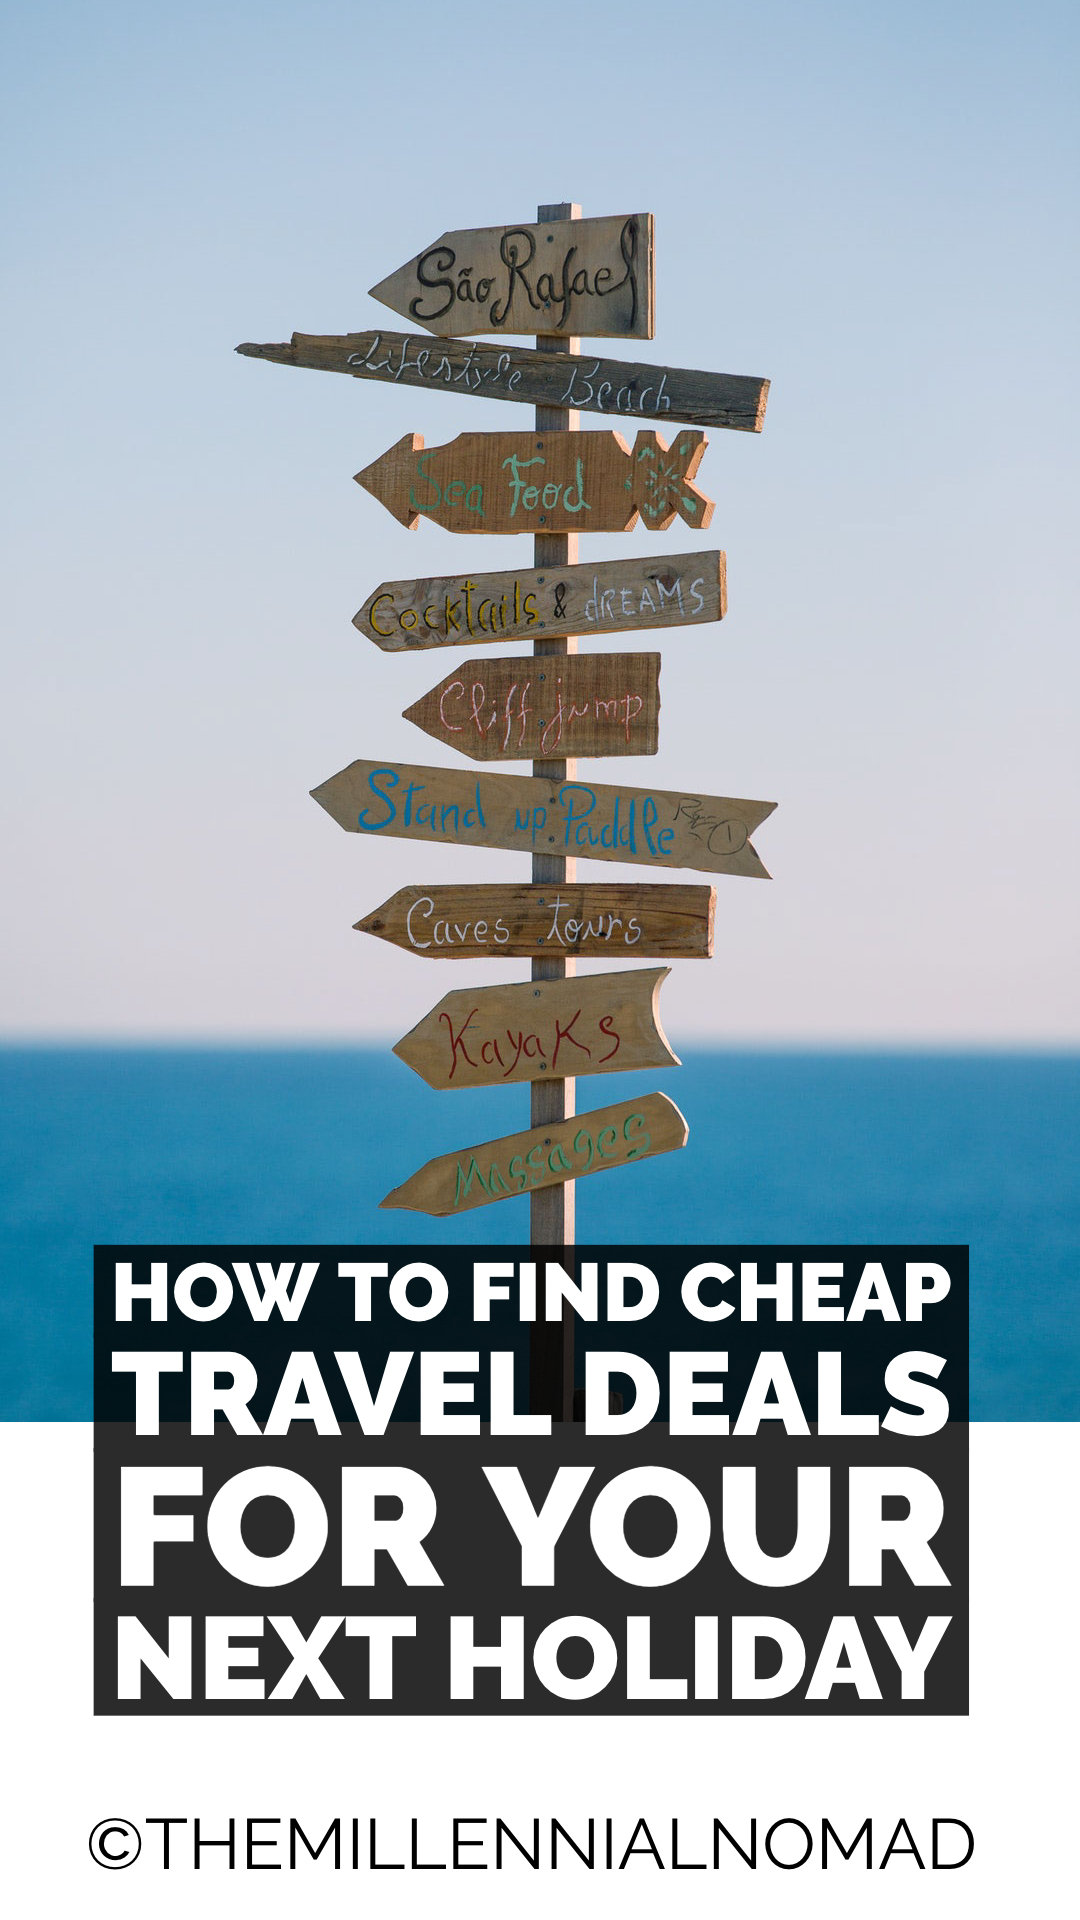 For the past 3 years I have traveled on average to 13 countries per year! That is a lot of check-ins, hours sitting on planes and visiting airports all over the world but also a lot of time invested in finding the cheapest deals online to travel. Booking your plane tickets and accommodations remain the two most expensive aspects of traveling. So how can you spend cheap travel deals in order to save some money you could invest in activities during your stay? This is what I will break down for you in this article.